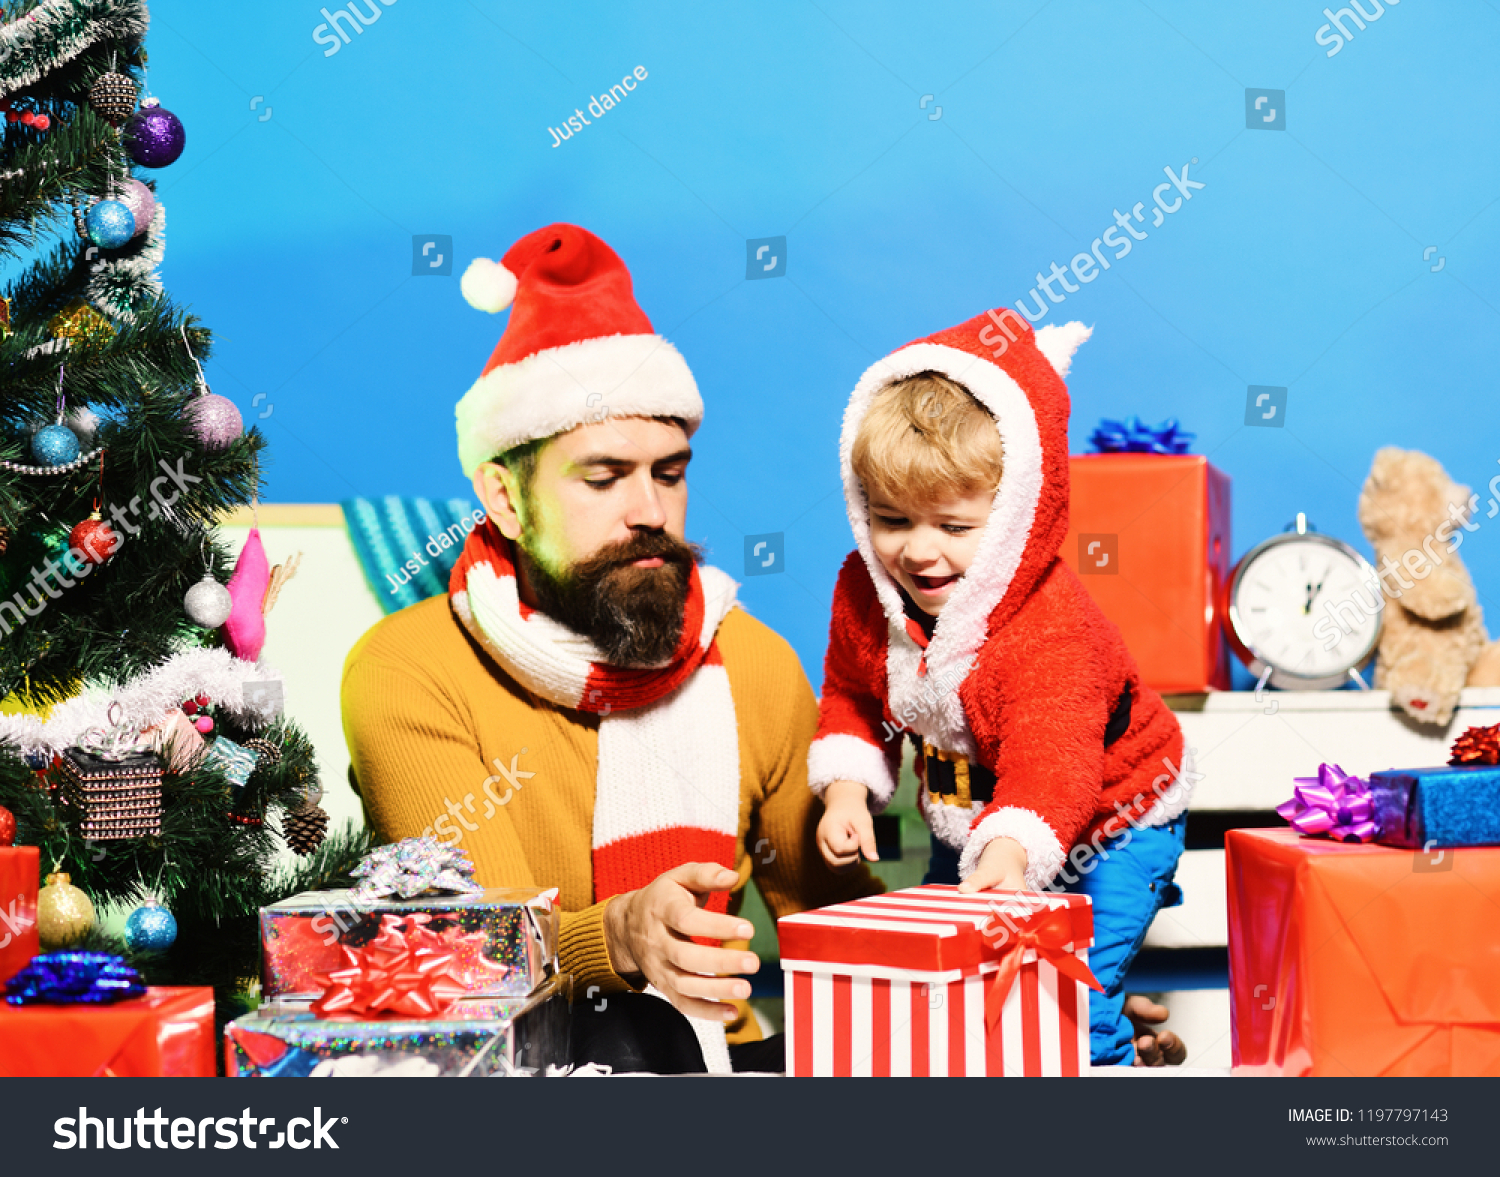 Santa Little Assistant Among Gift Boxes Stock Photo (Edit Now ...